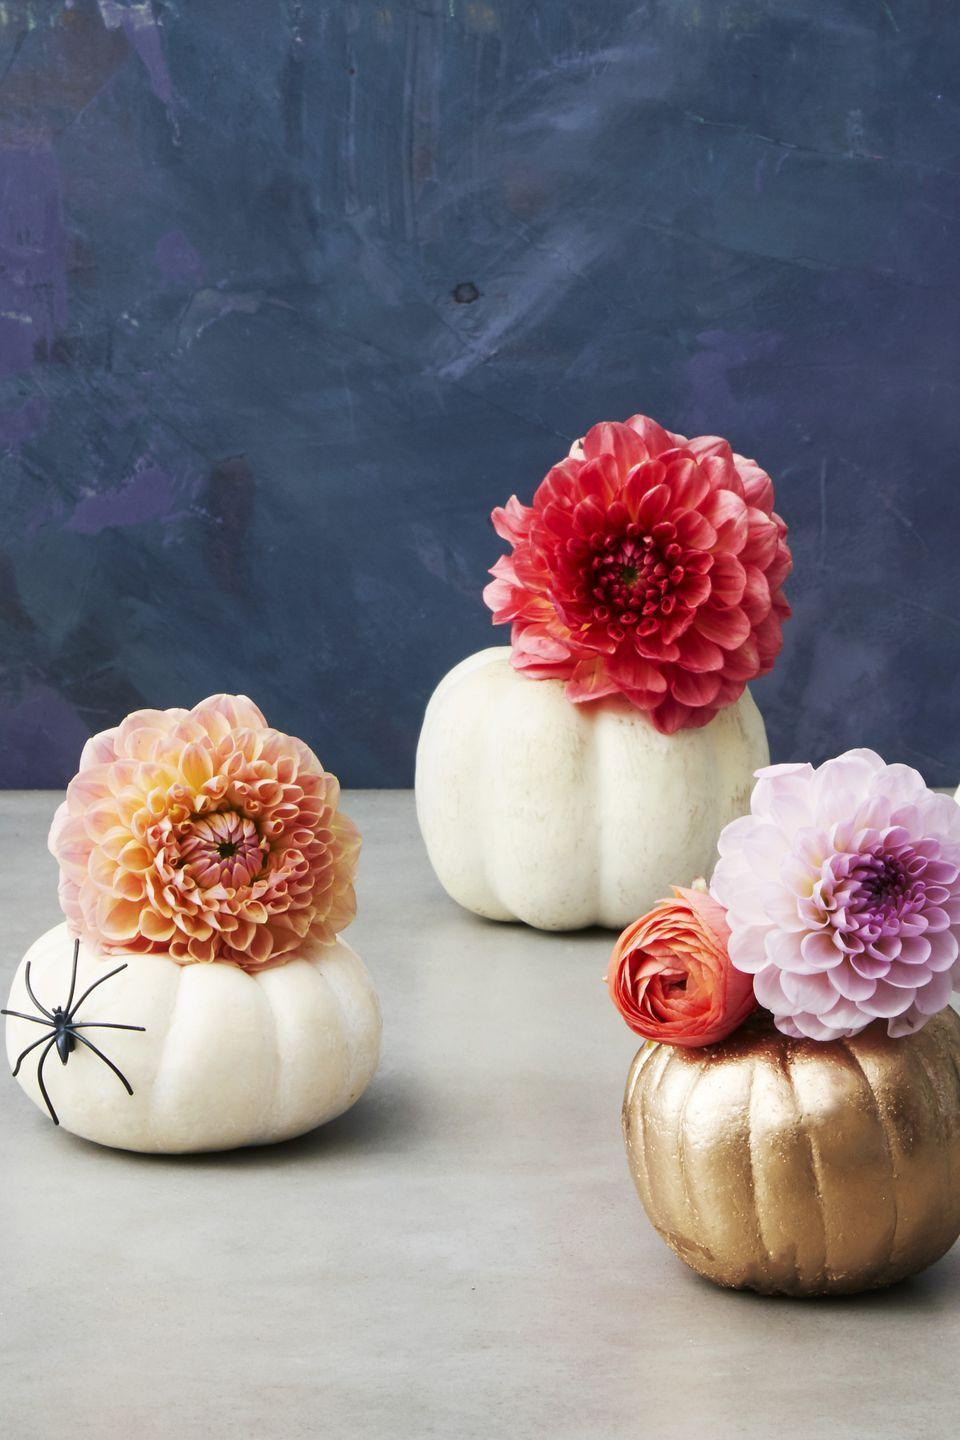 """<p>These <a href=""""https://www.goodhousekeeping.com/home/gardening/g22563541/fall-flowers/"""" rel=""""nofollow noopener"""" target=""""_blank"""" data-ylk=""""slk:flower-filled pumpkins"""" class=""""link rapid-noclick-resp"""">flower-filled pumpkins</a> are both adorable <em>and </em>practical. Paint mini pumpkins the color of your choice, carve off the top, add the bottom of a water bottle as a vase, and fill with fresh blooms. Then scatter them throughout your house, or use them to line the dinner table. </p>"""